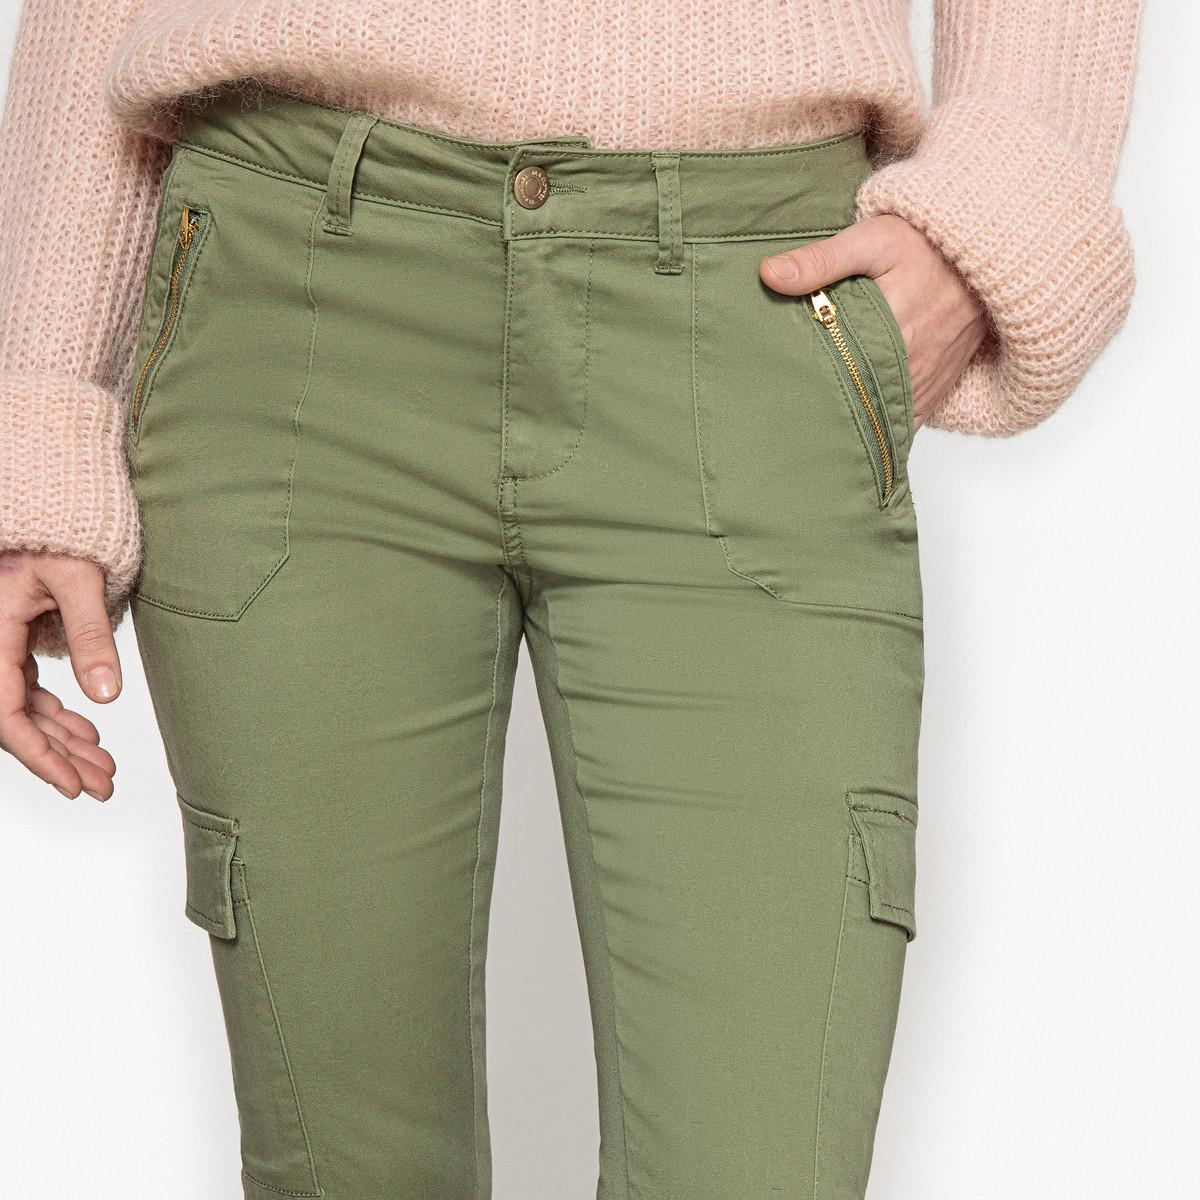 Lyst In Cigarette Slim Vila Green Trousers Fit AA6Znq af959919bc59